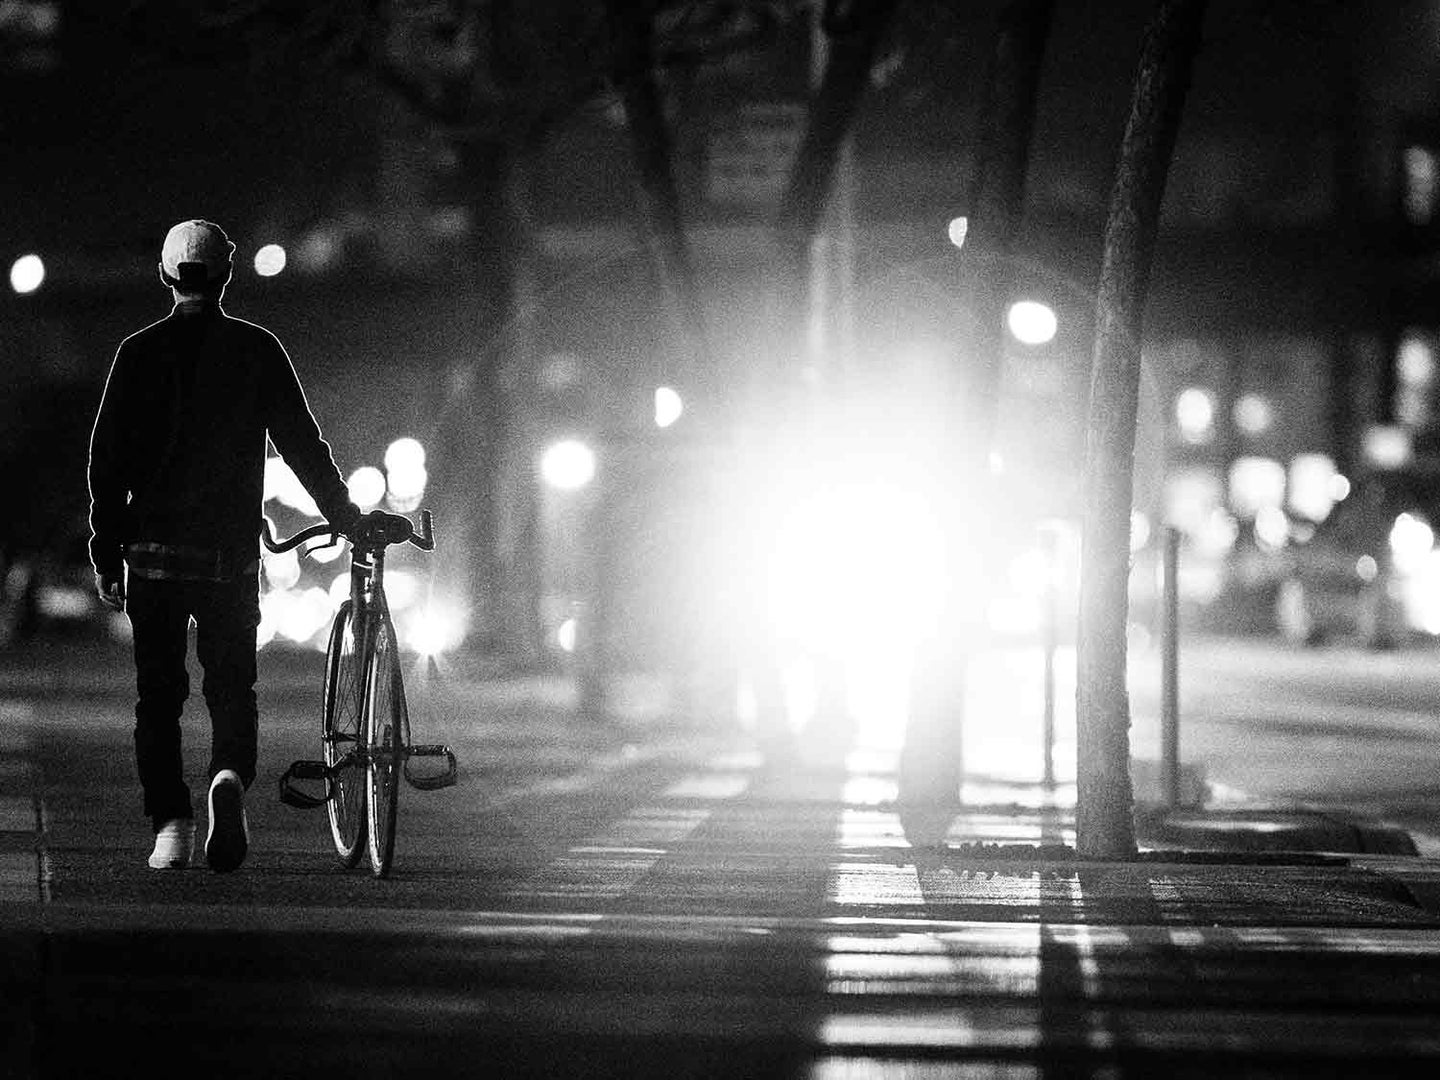 Man walking with bike at night with light.